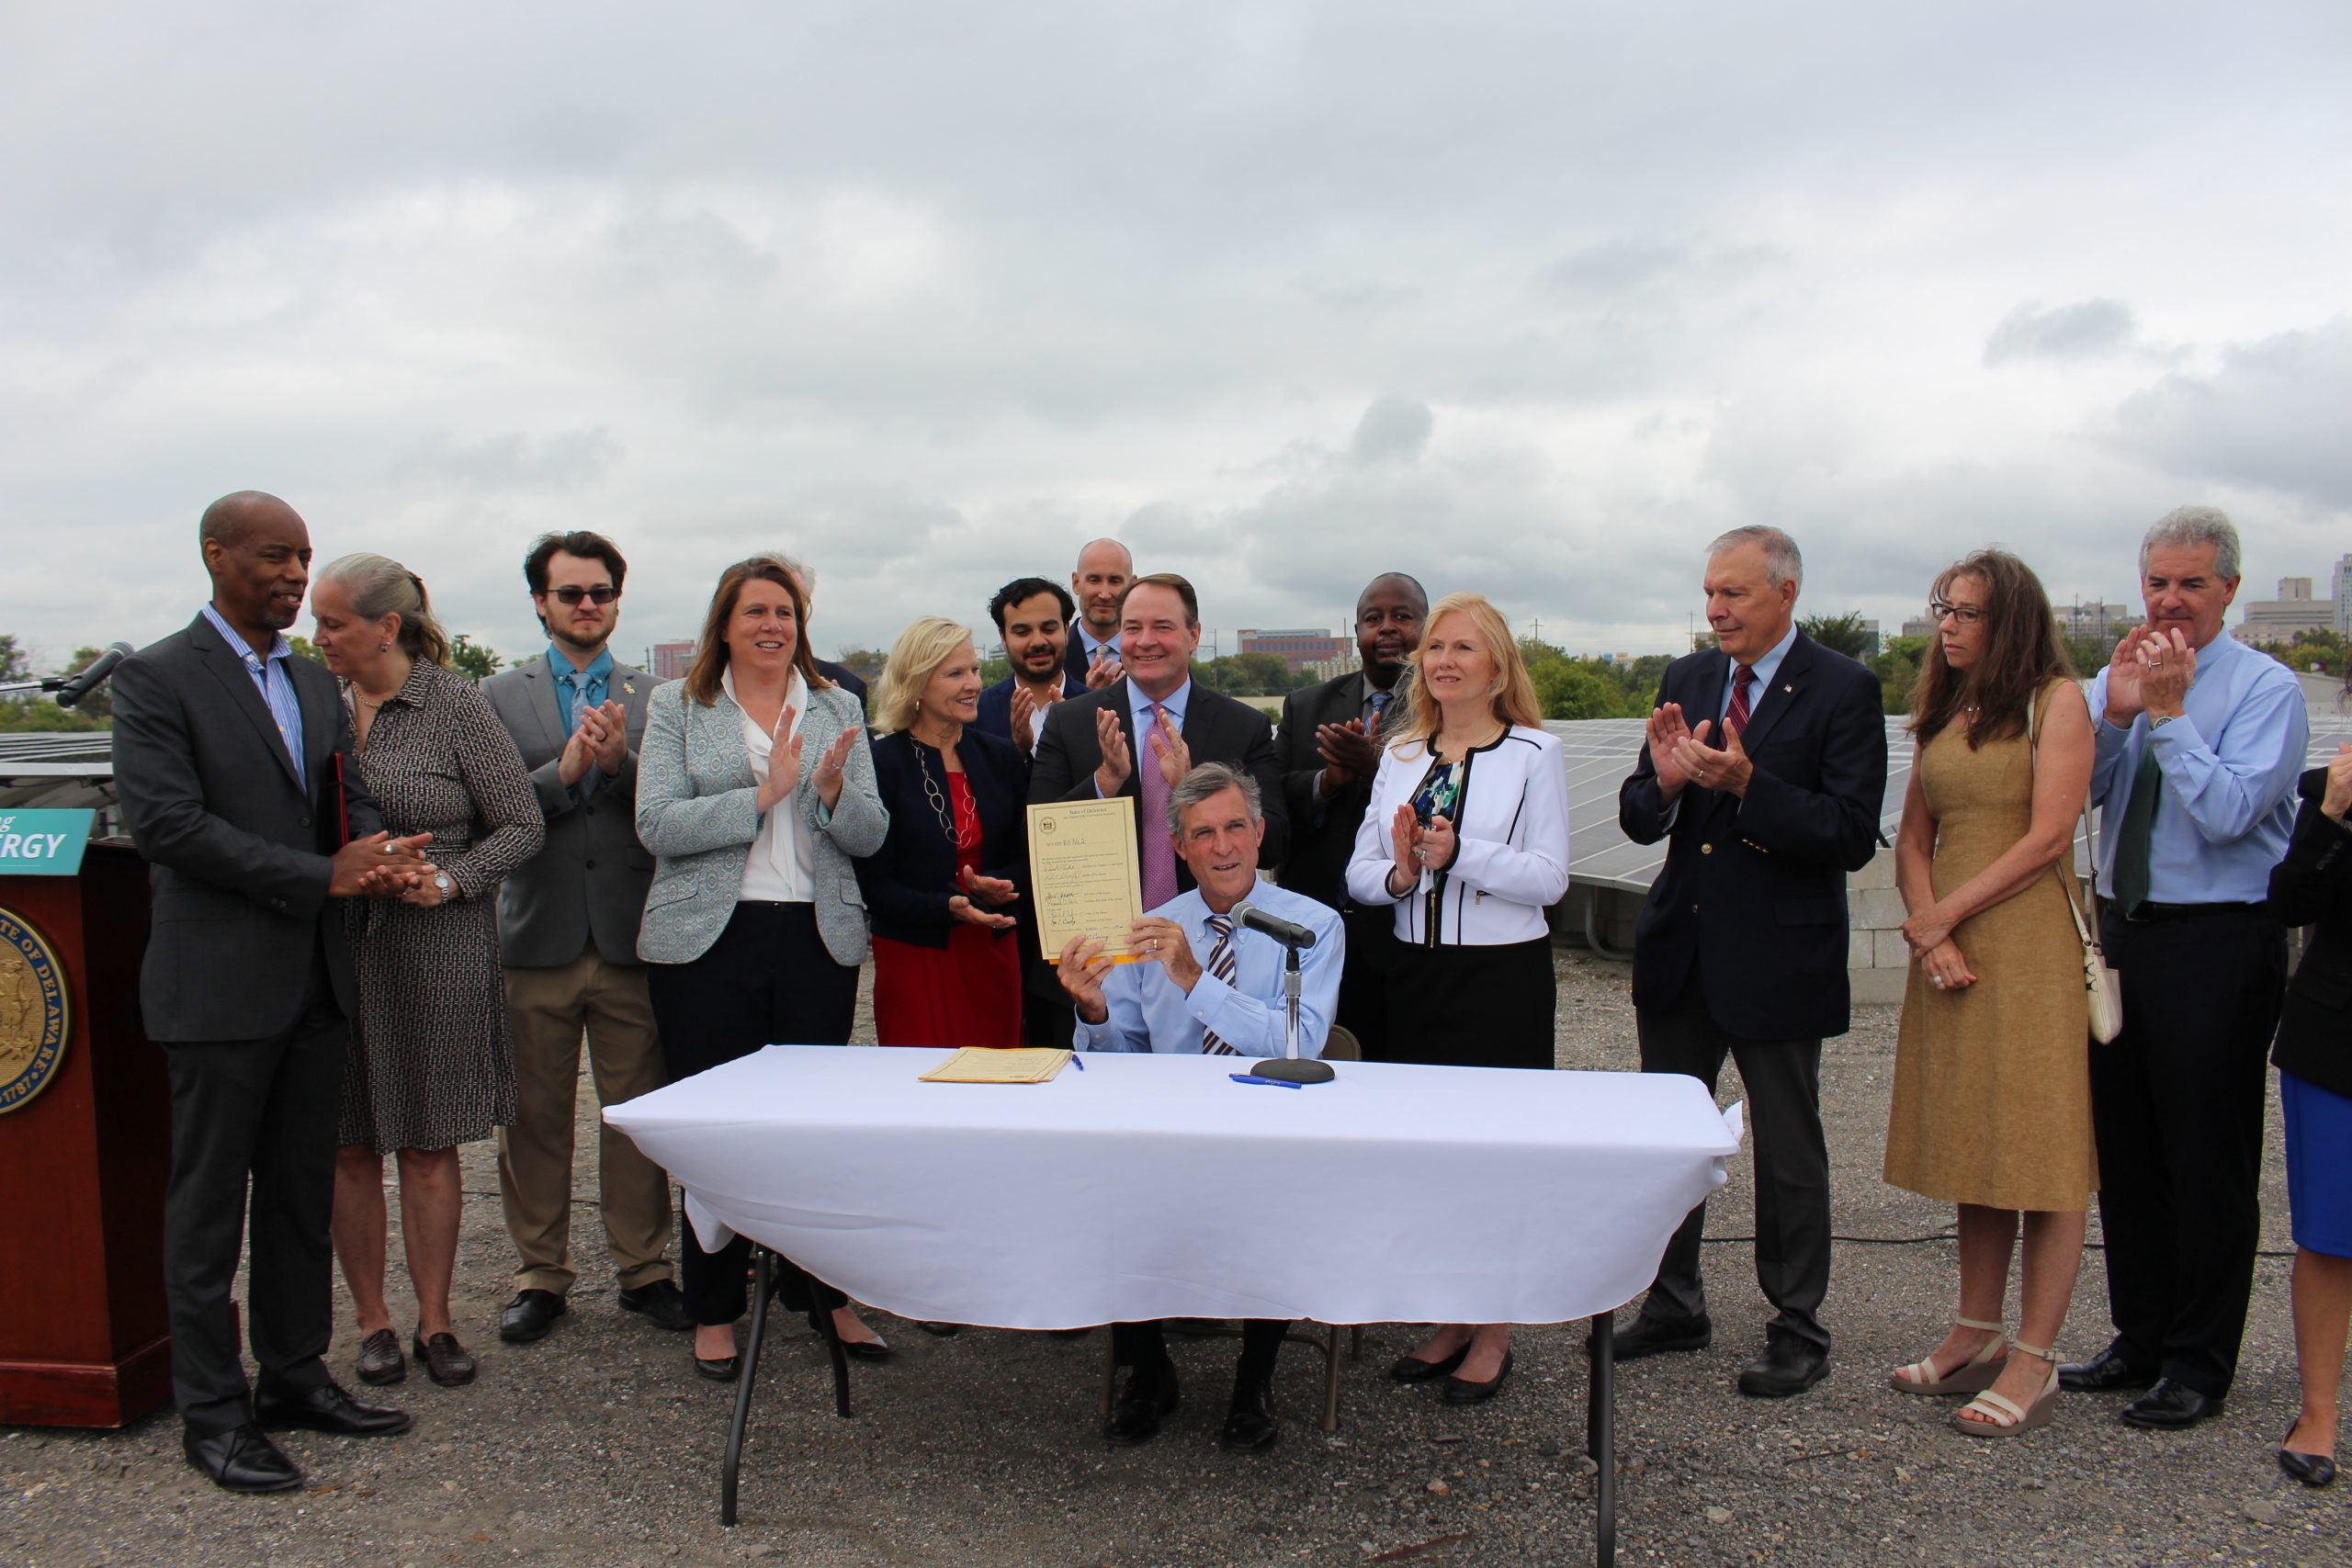 Governor Carney holds up a piece of legislation after signing it into law, surrounded by legislators and supporters, while outdoors at a solar array.